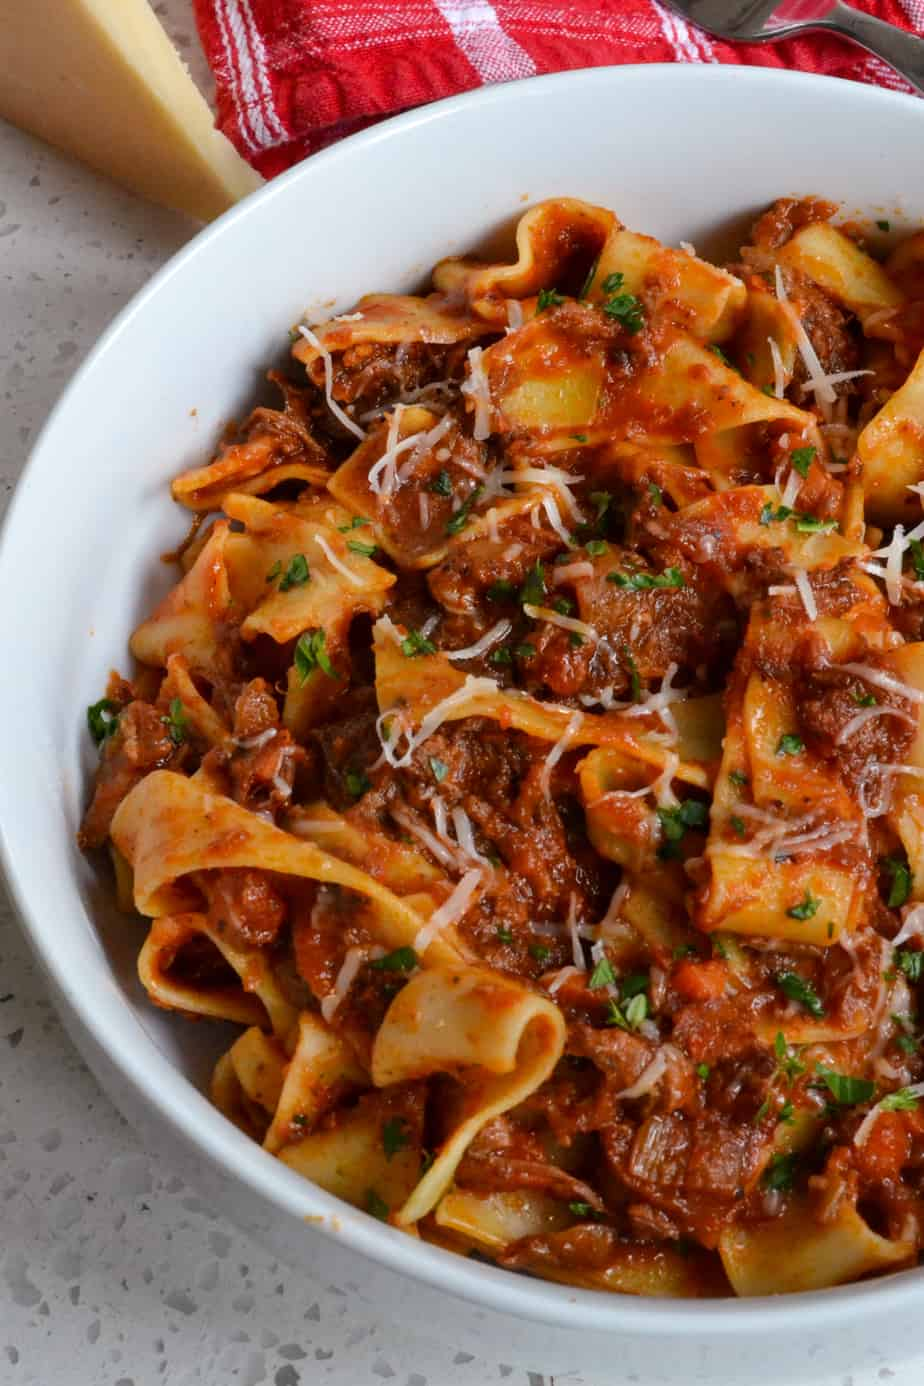 Pappardelle pasta mixed with slow cooked beef ragu.